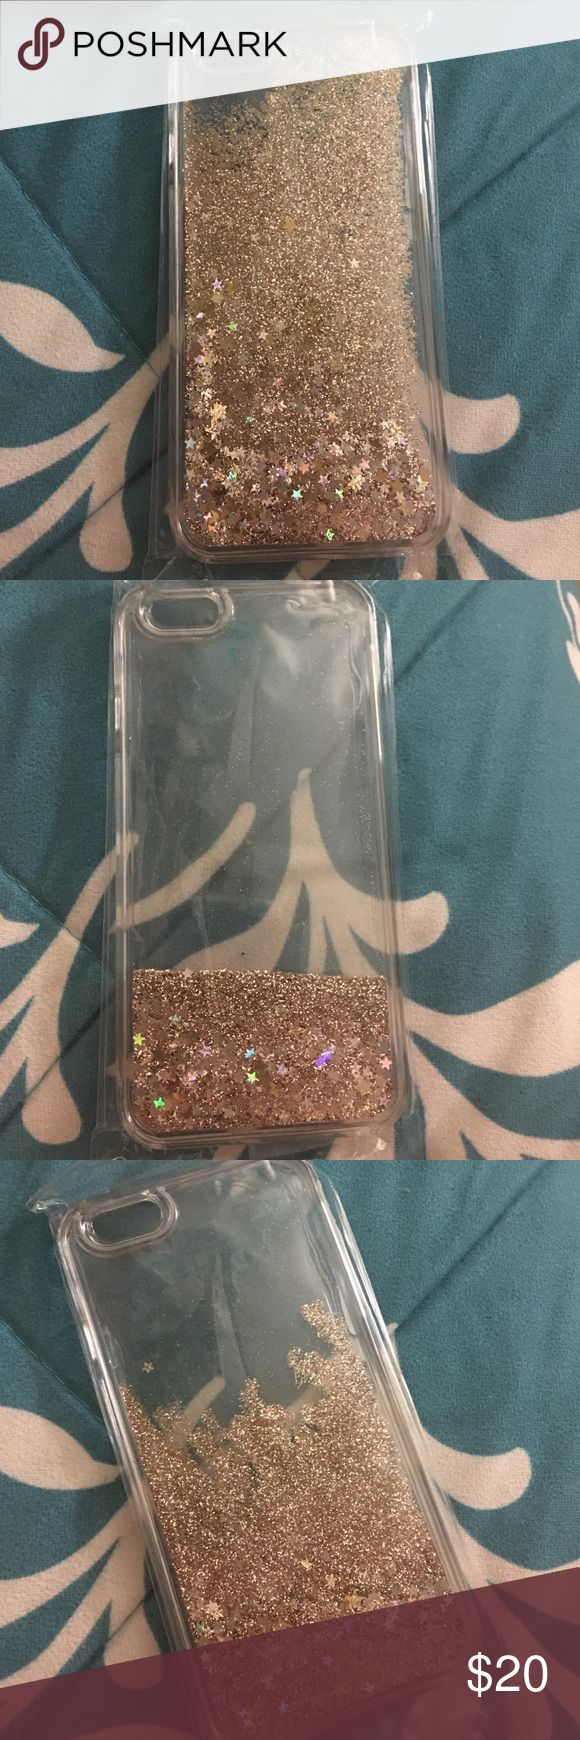 New iPhone 6/6s liquid glitter case! It is a clear plastic liquid glitter case for the iPhone 6/6s. It is Gold. It won't fit my phone because I have the 6s Plus. This case is brand new, never used and never opened! No trades! Accessories Phone Cases